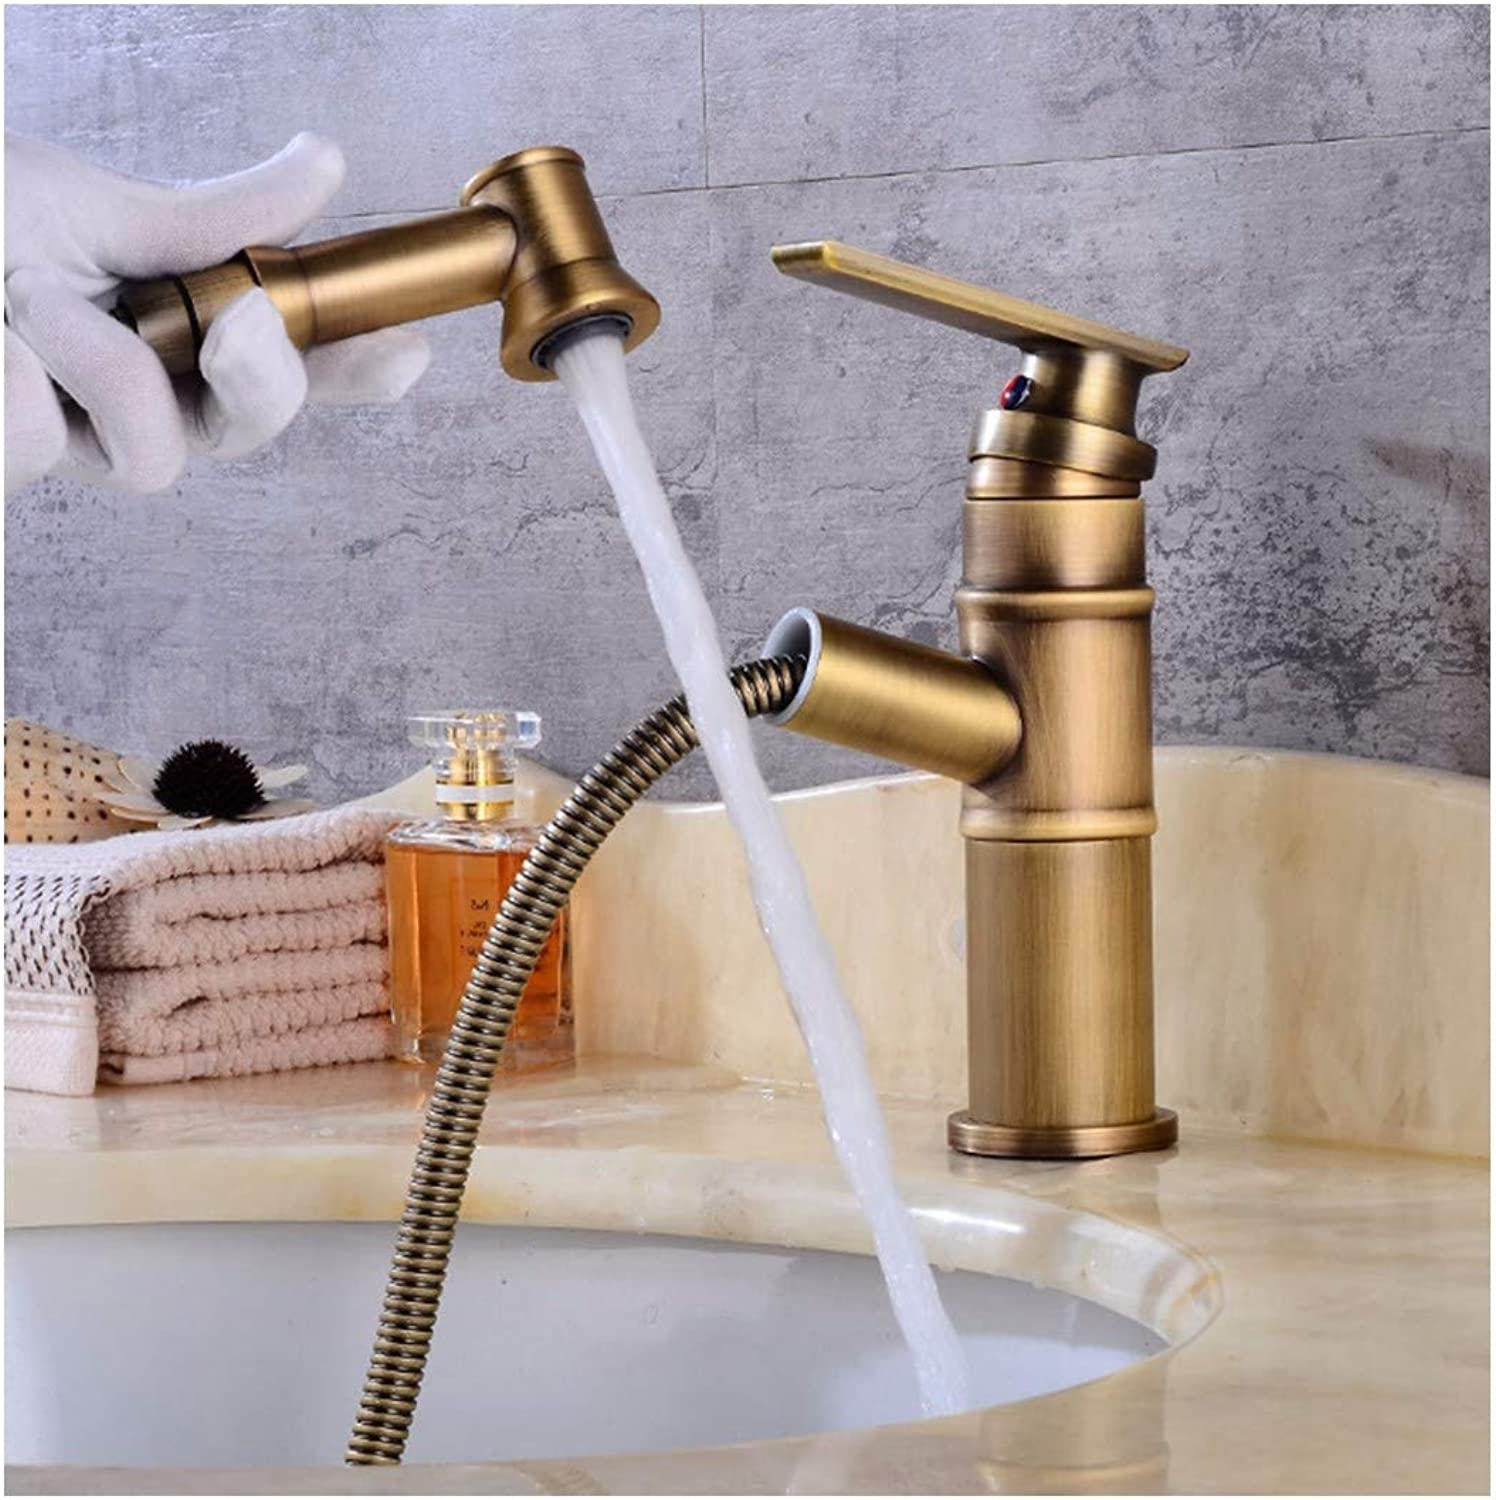 PatTheTap Retro Bronze Pull Out Short Faucet Vintage Brushed All Copper Tap Round Base 1-Hole 1 Handle Water Tap Hot and Cold Mixing Water-Tap with Hoses for Kitchen Bathroom Washbasin Sink